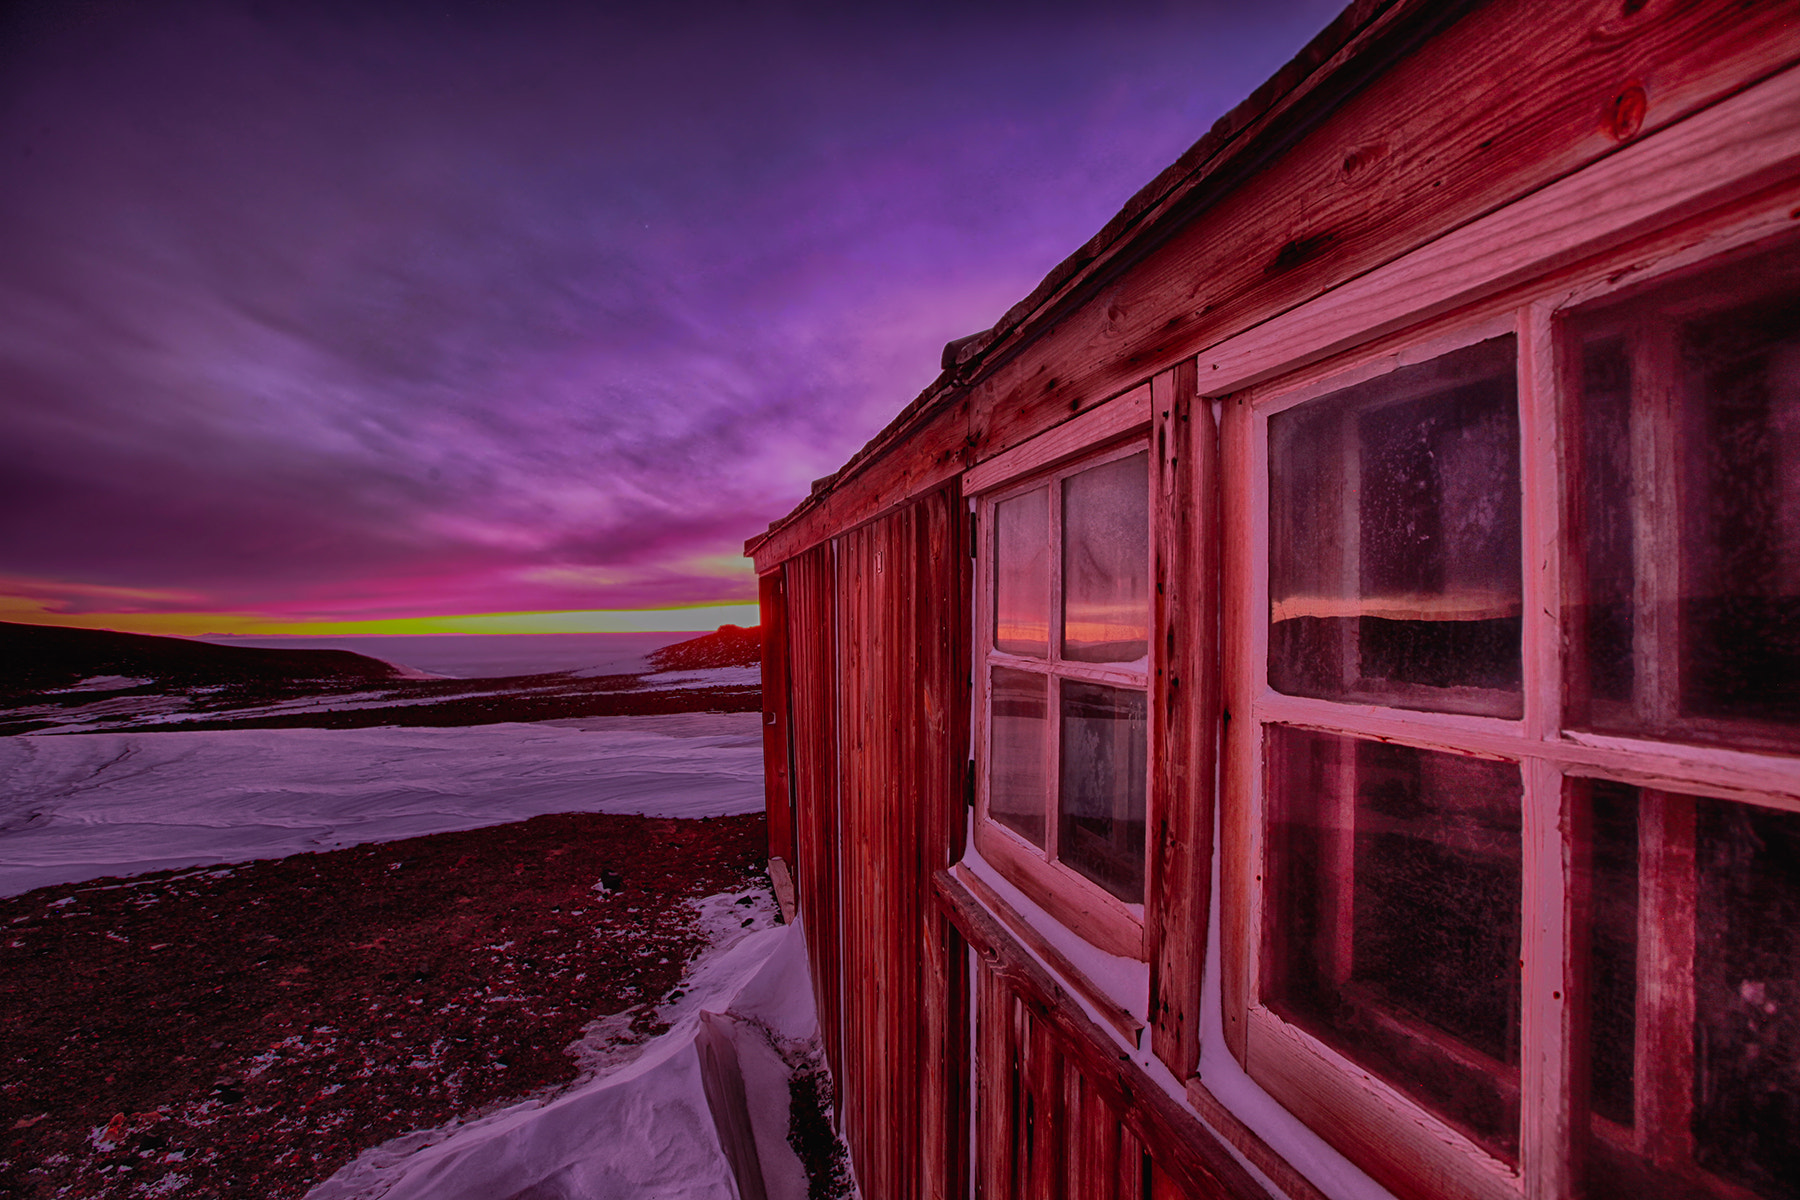 Photograph Late Winter at Scott Hut, Antarctica by Deven Stross on 500px